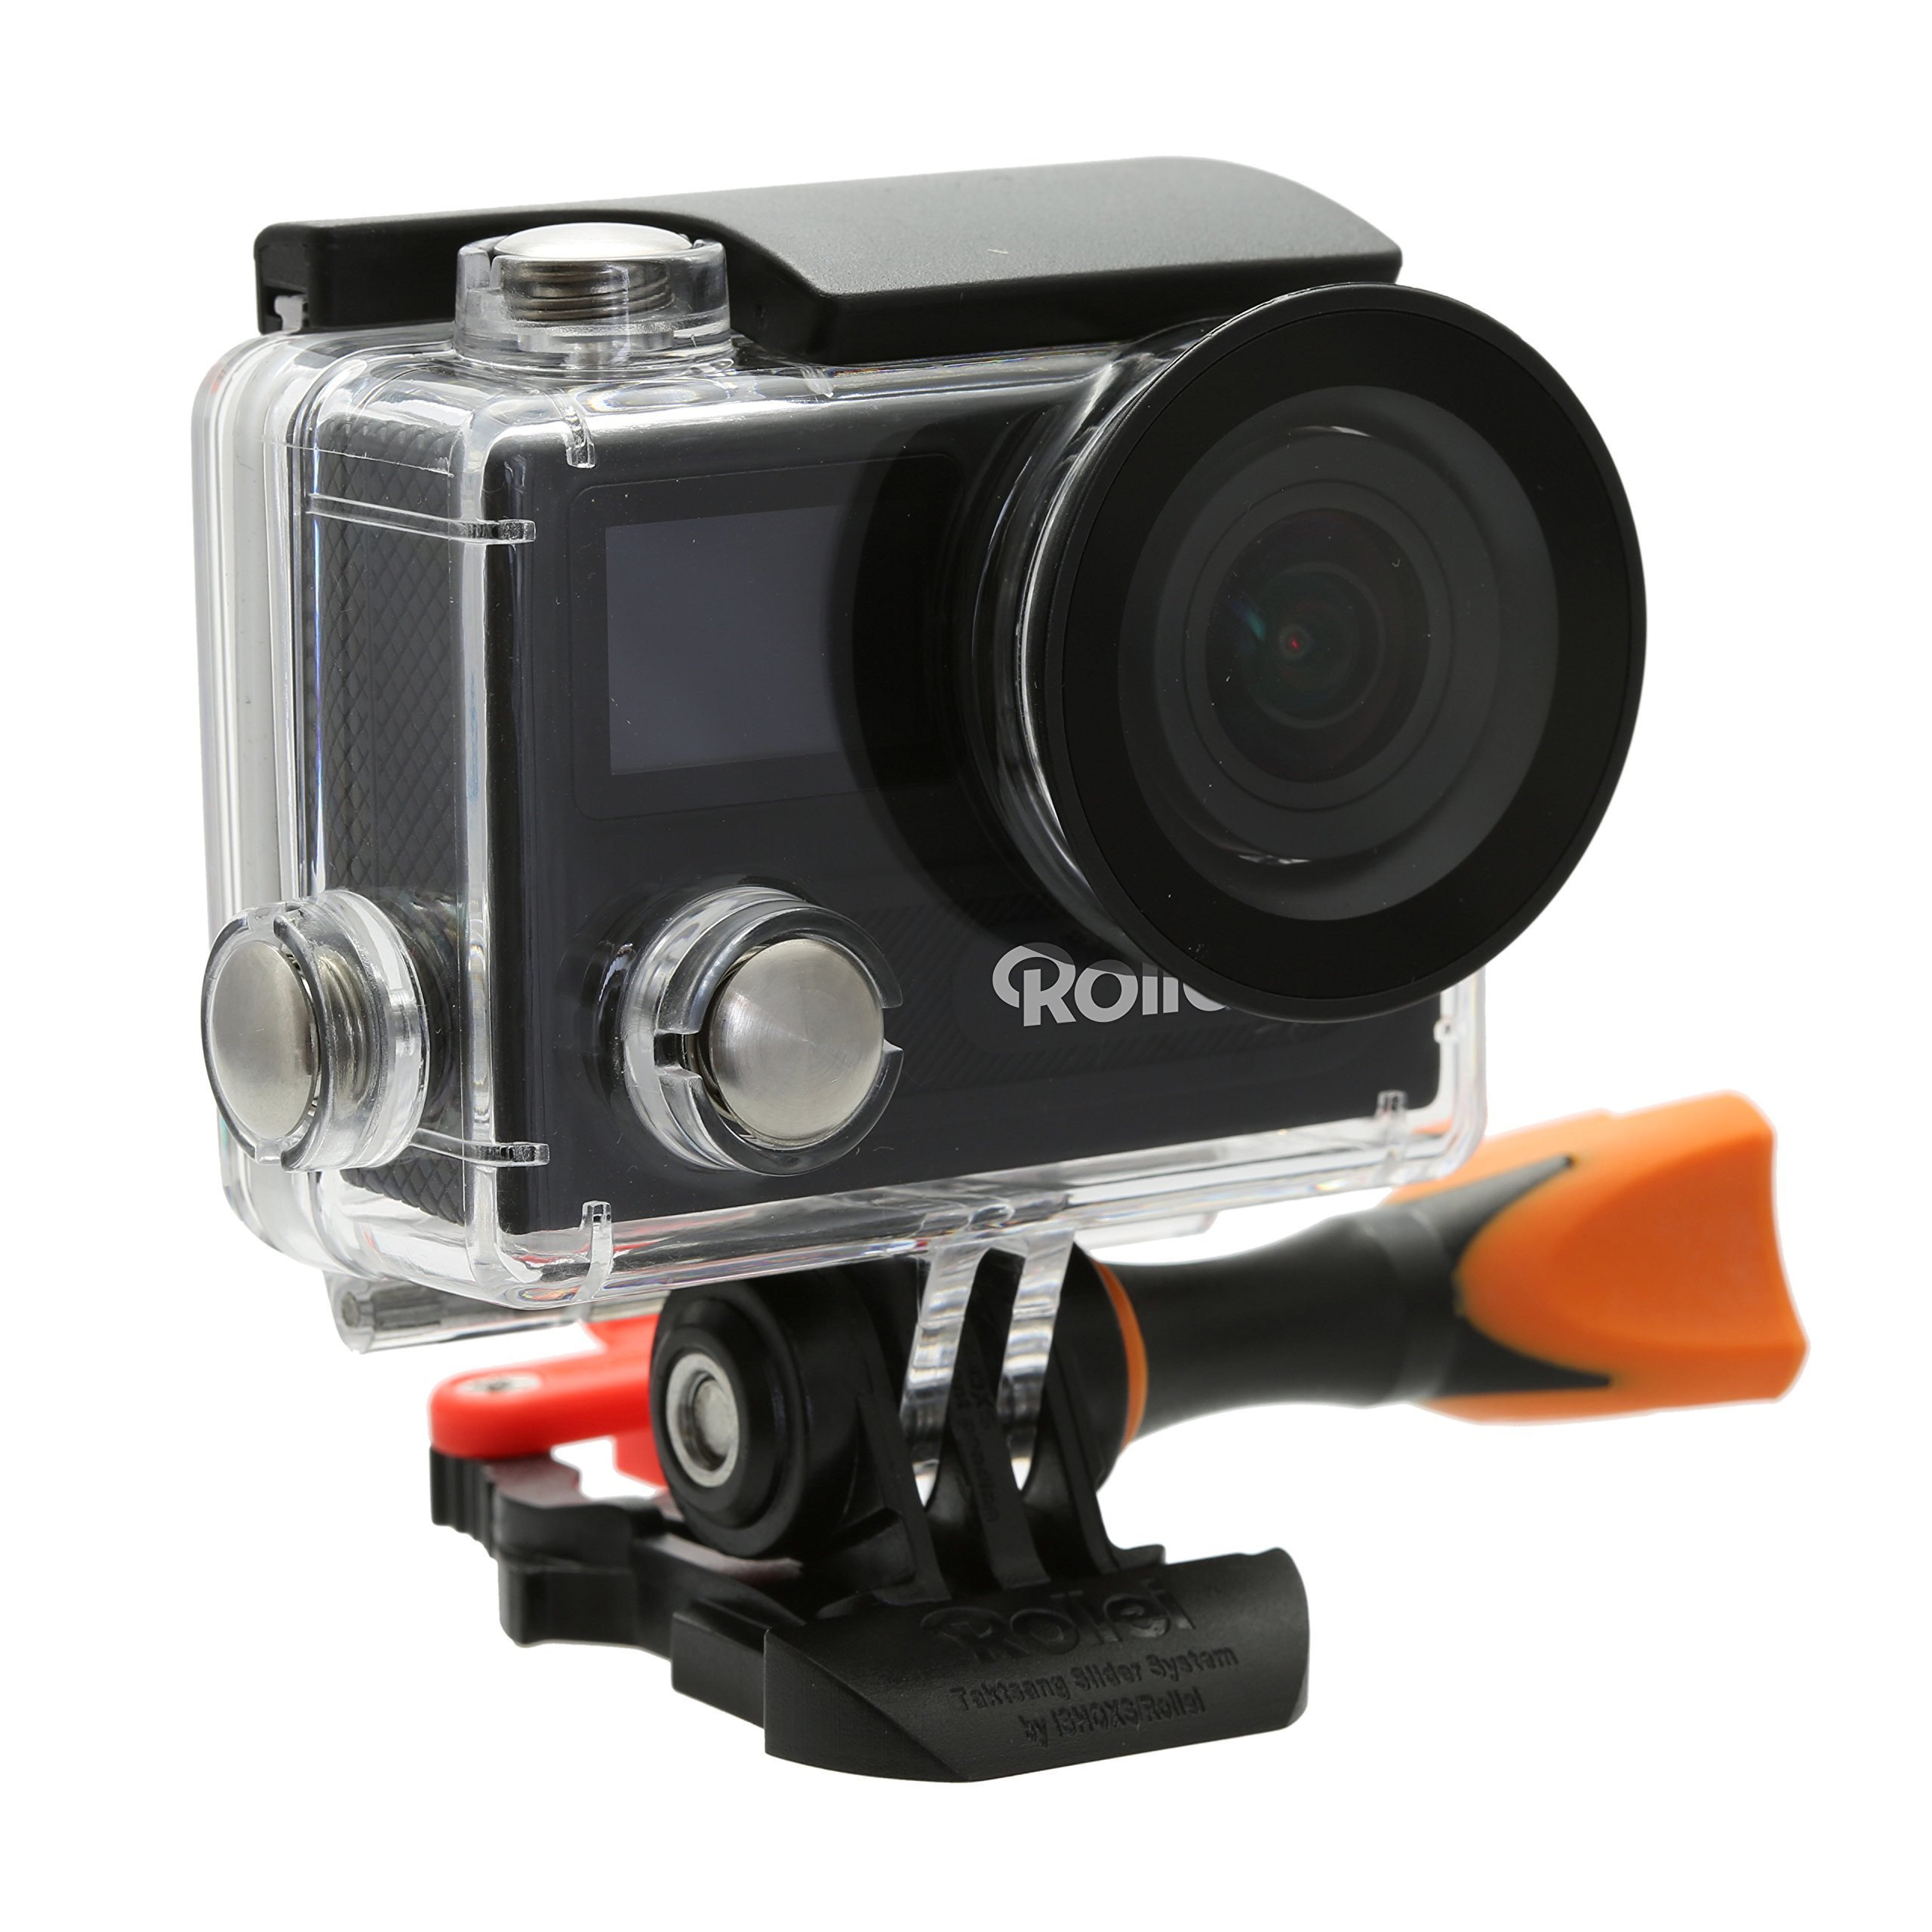 Rollei Actioncam 430 Powerful Wi-Fi Action Camcorder with 4K, 2K and Full HD Video Resolution - Black